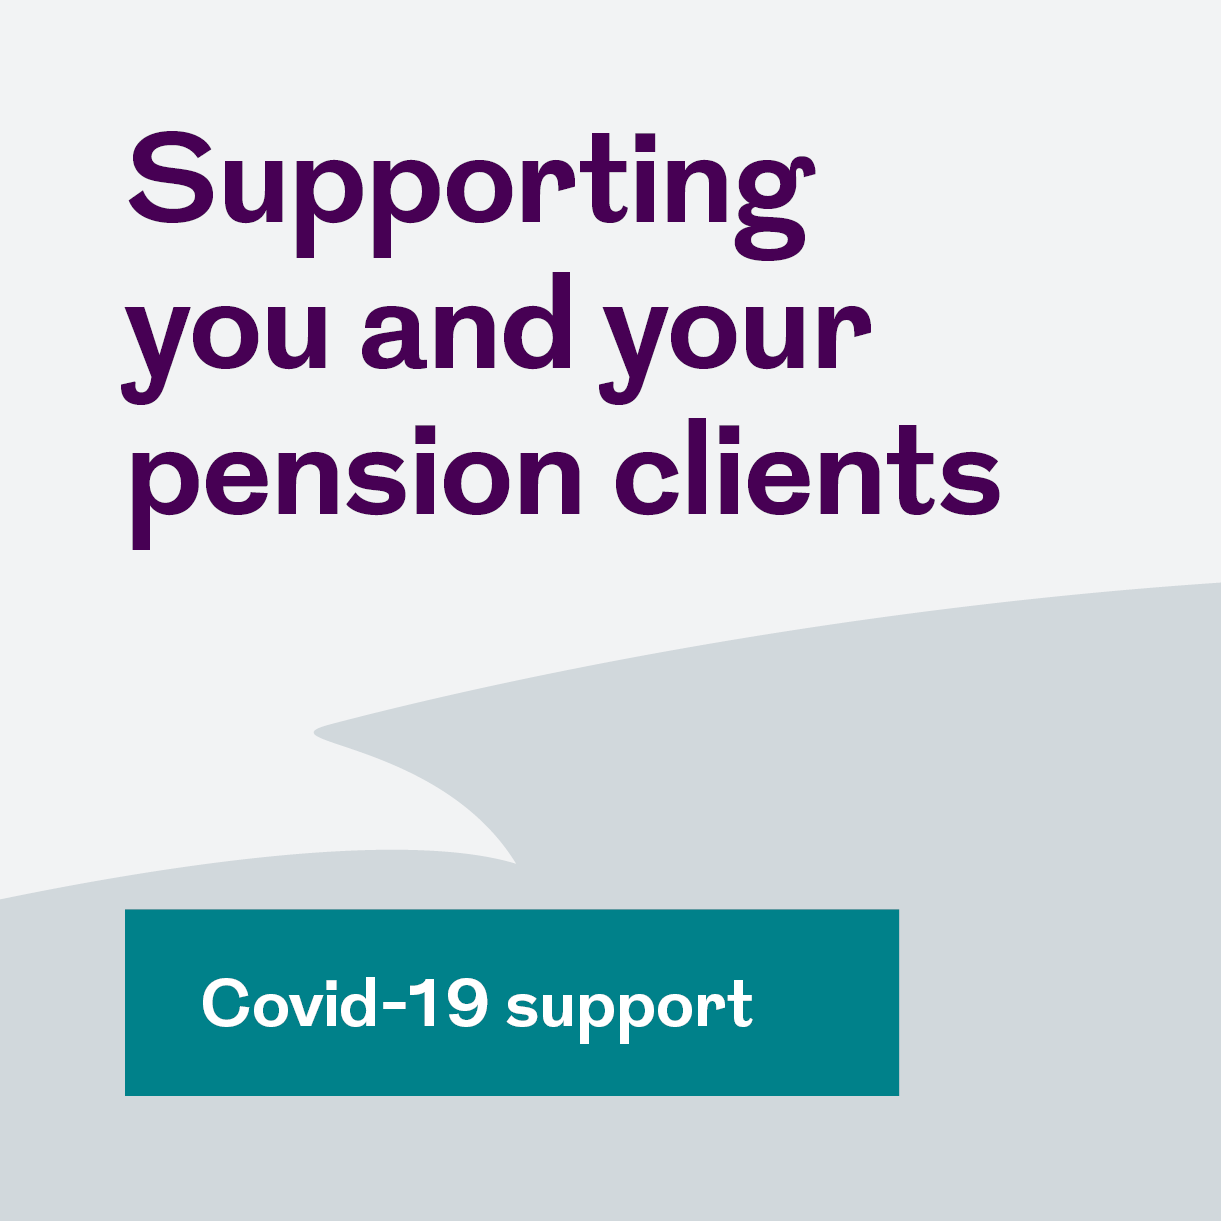 supporting you and your pension clients